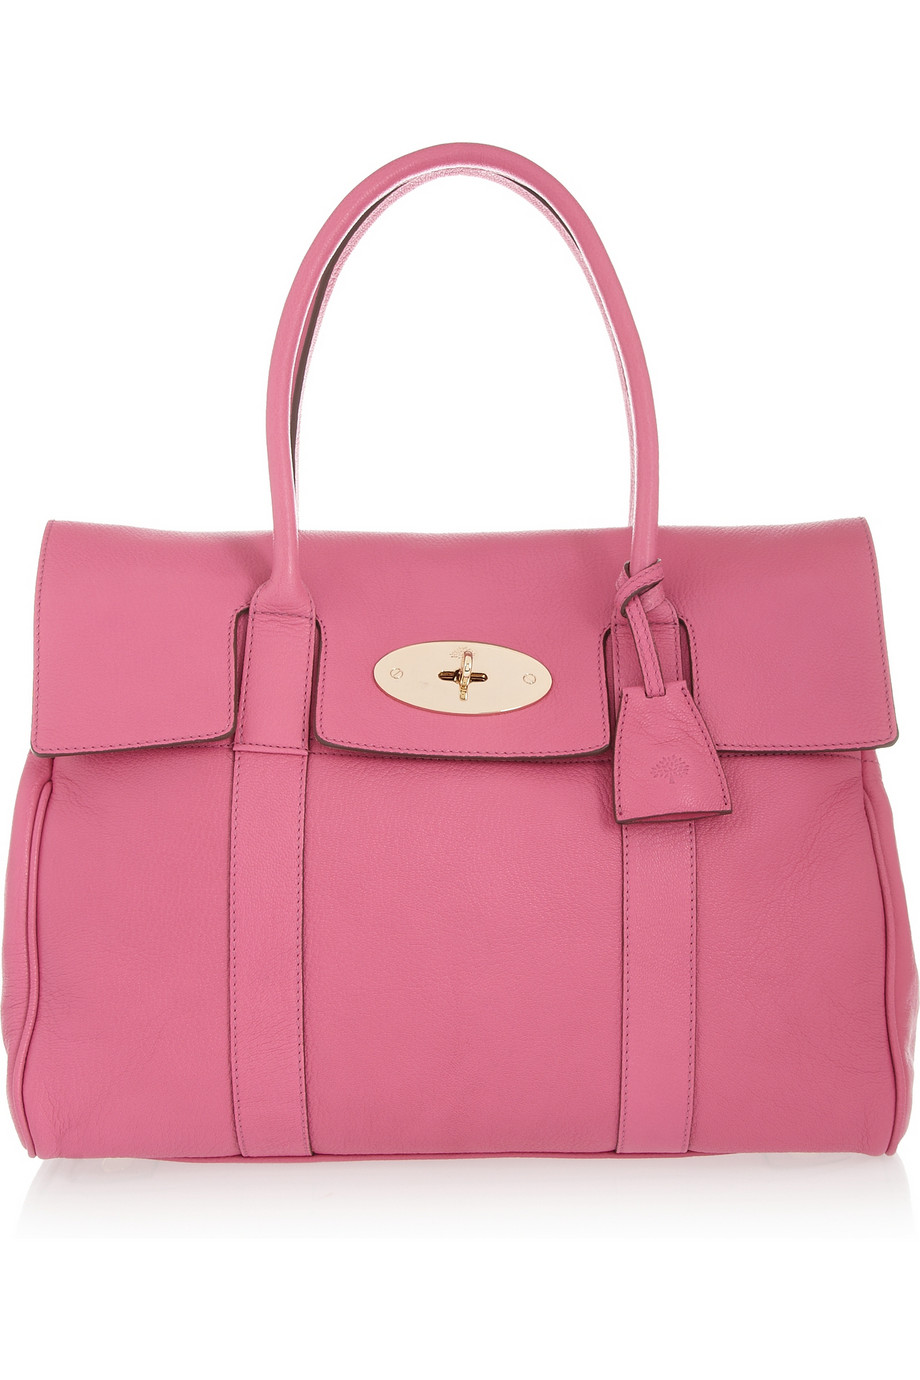 Mulberry the bayswater leather bag in pink raspberry lyst for The bayswater